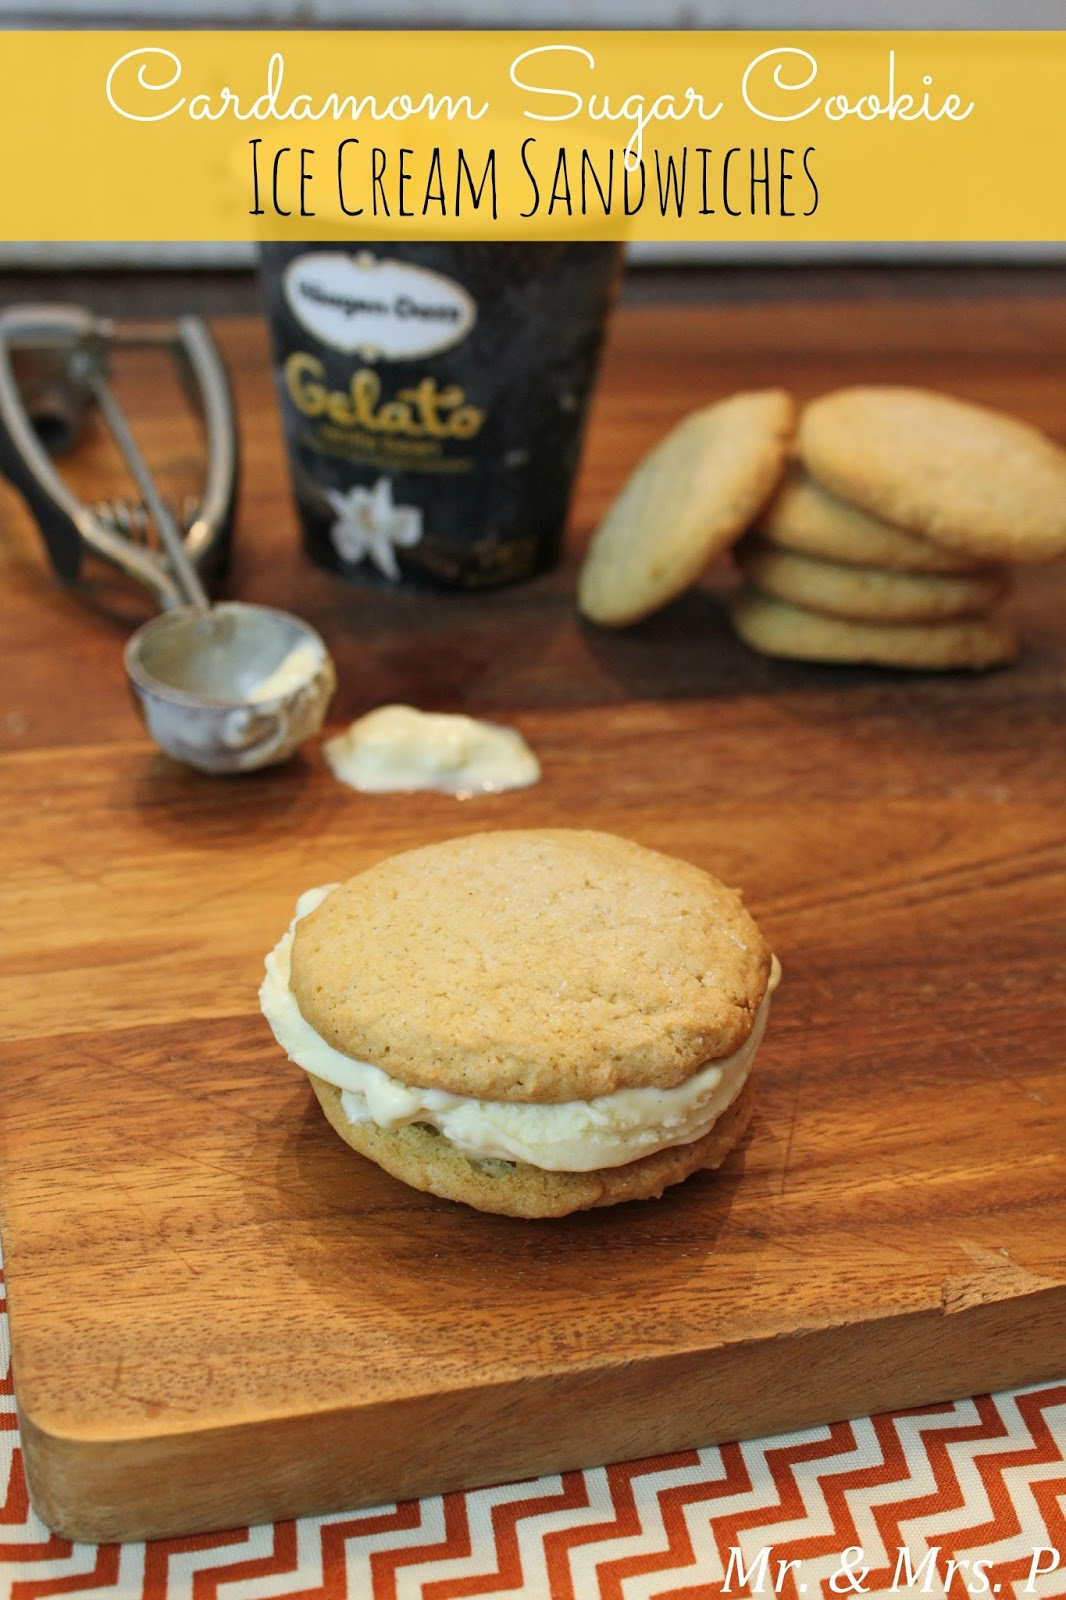 Mr. & Mrs. P: Cardamom Sugar Cookie Ice Cream Sandwiches